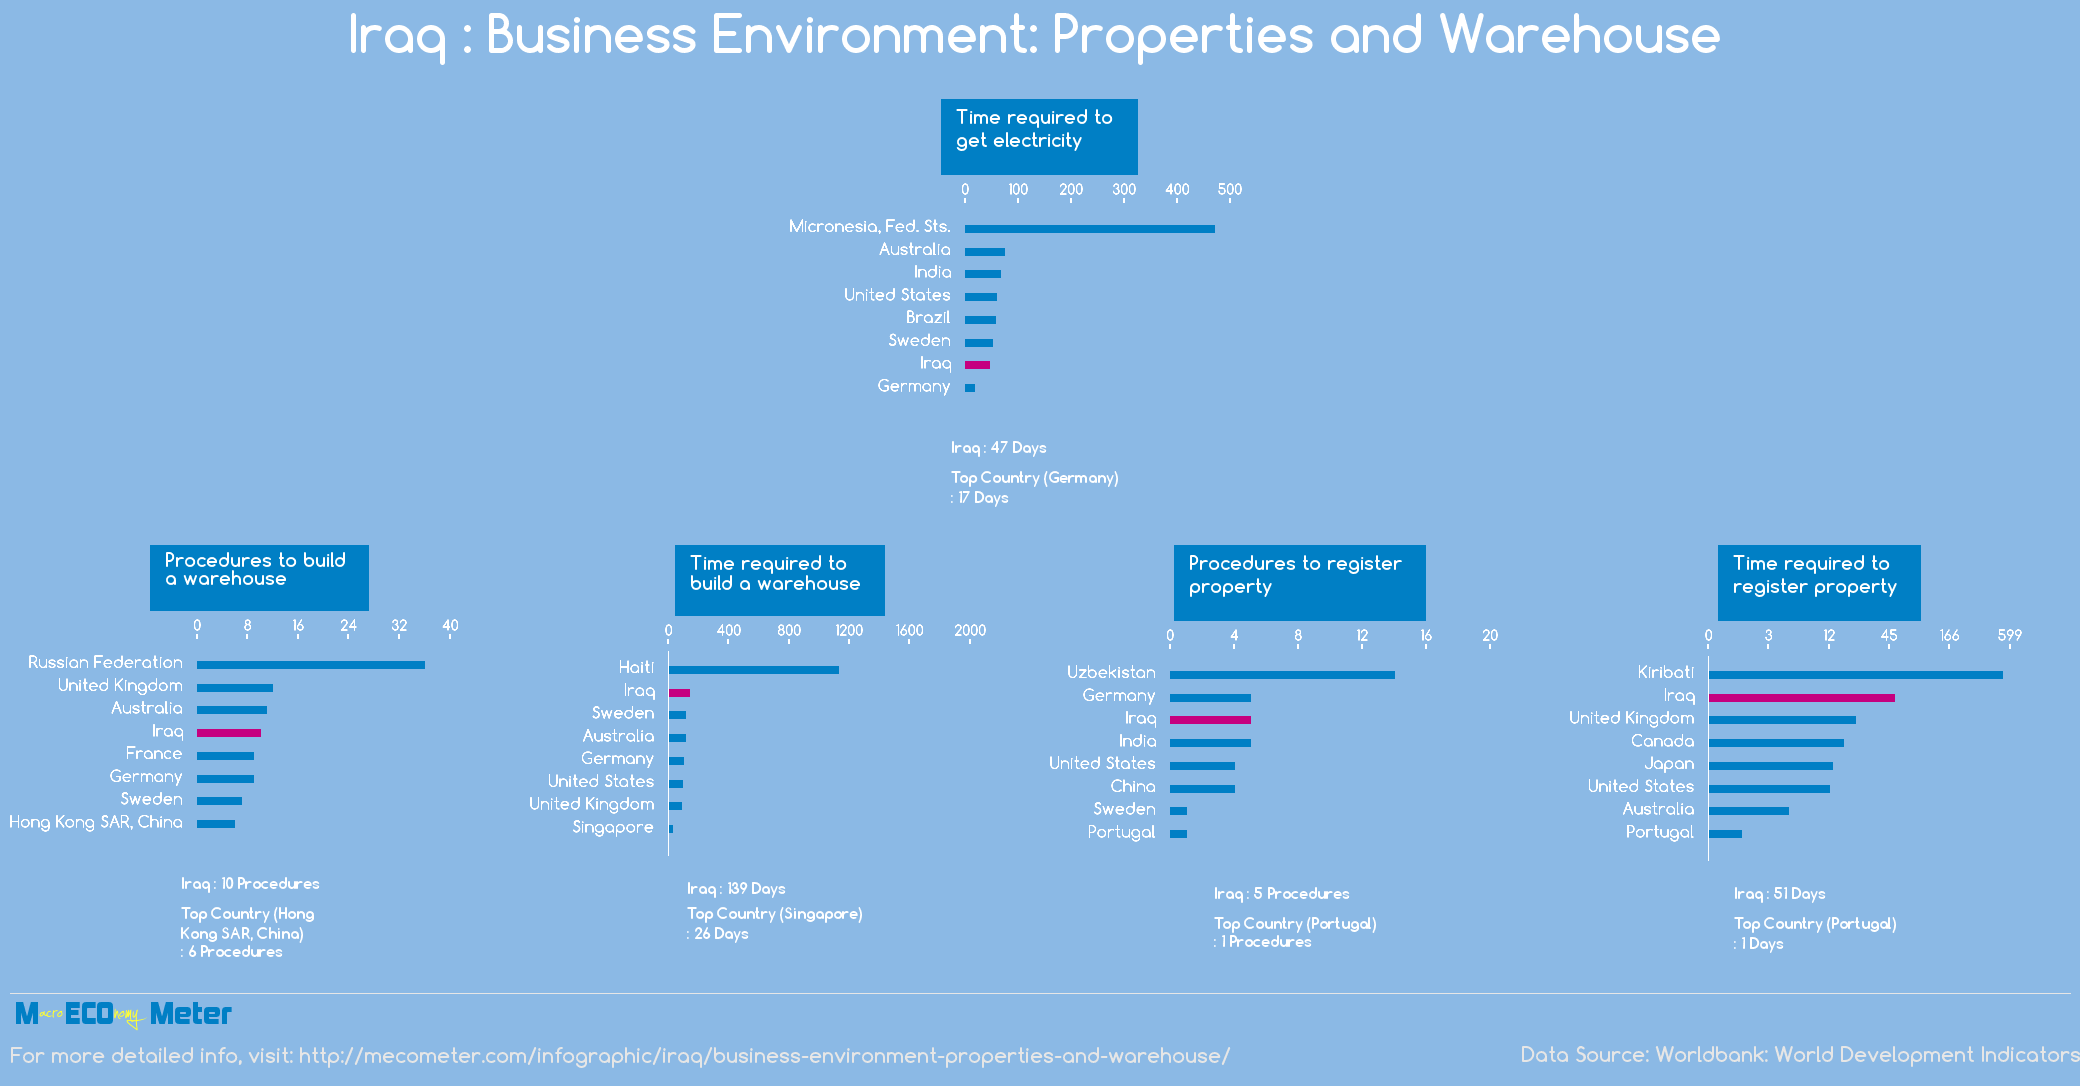 Iraq : Business Environment: Properties and Warehouse